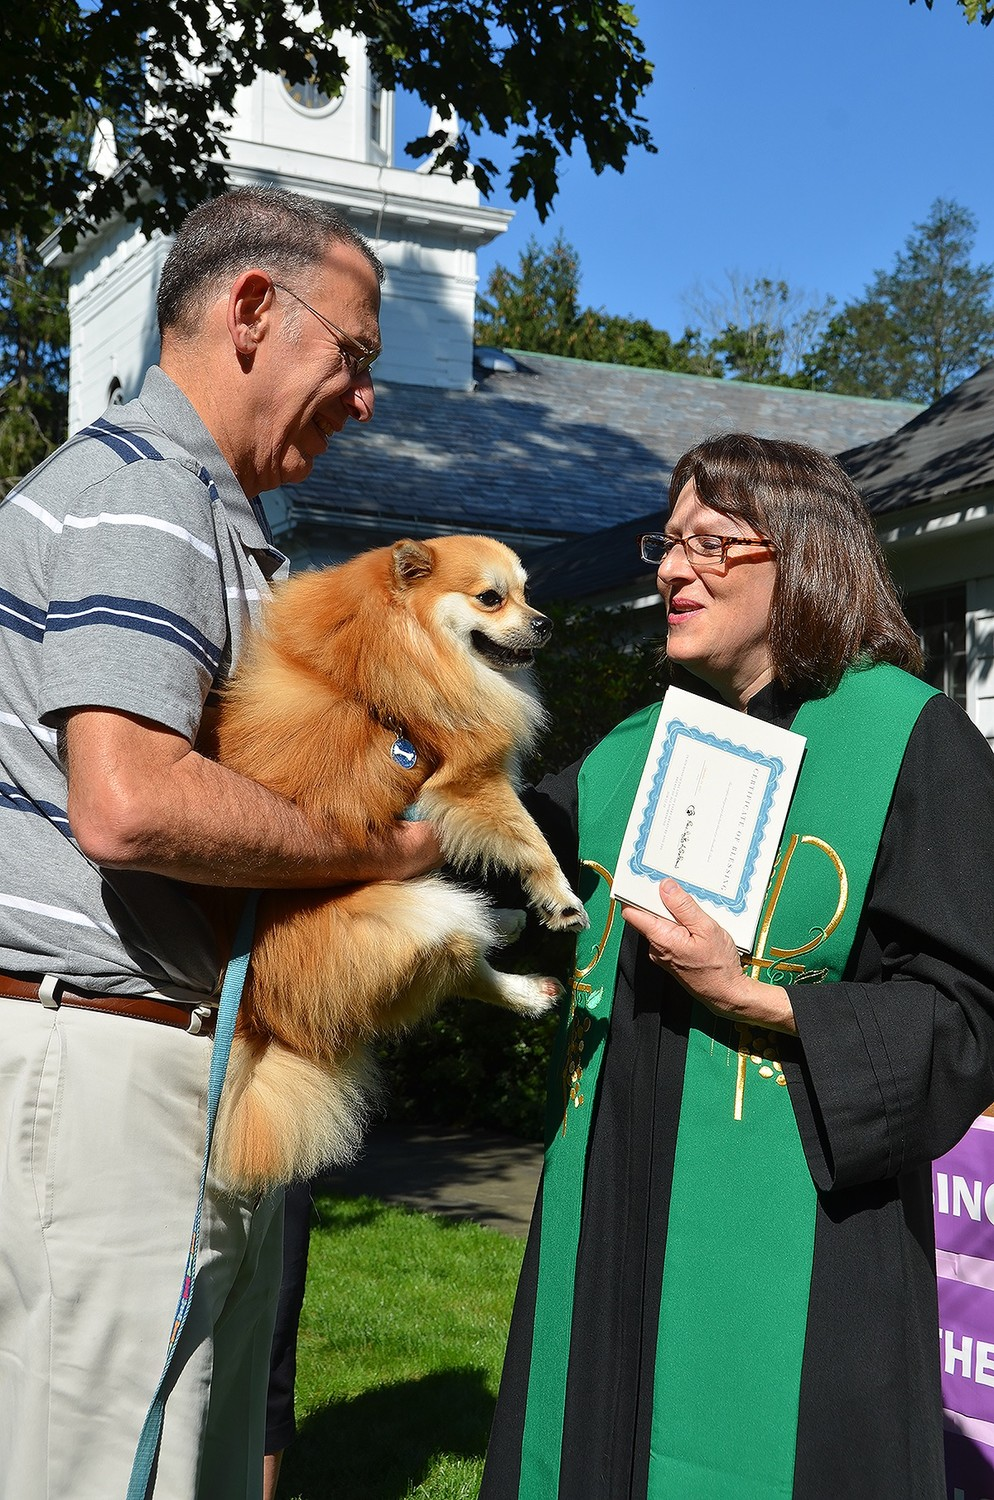 Robert Schonfeld brought his dog Mr. Bentley to the Blessing of the Animals at Brookville Church on Sept. 24.